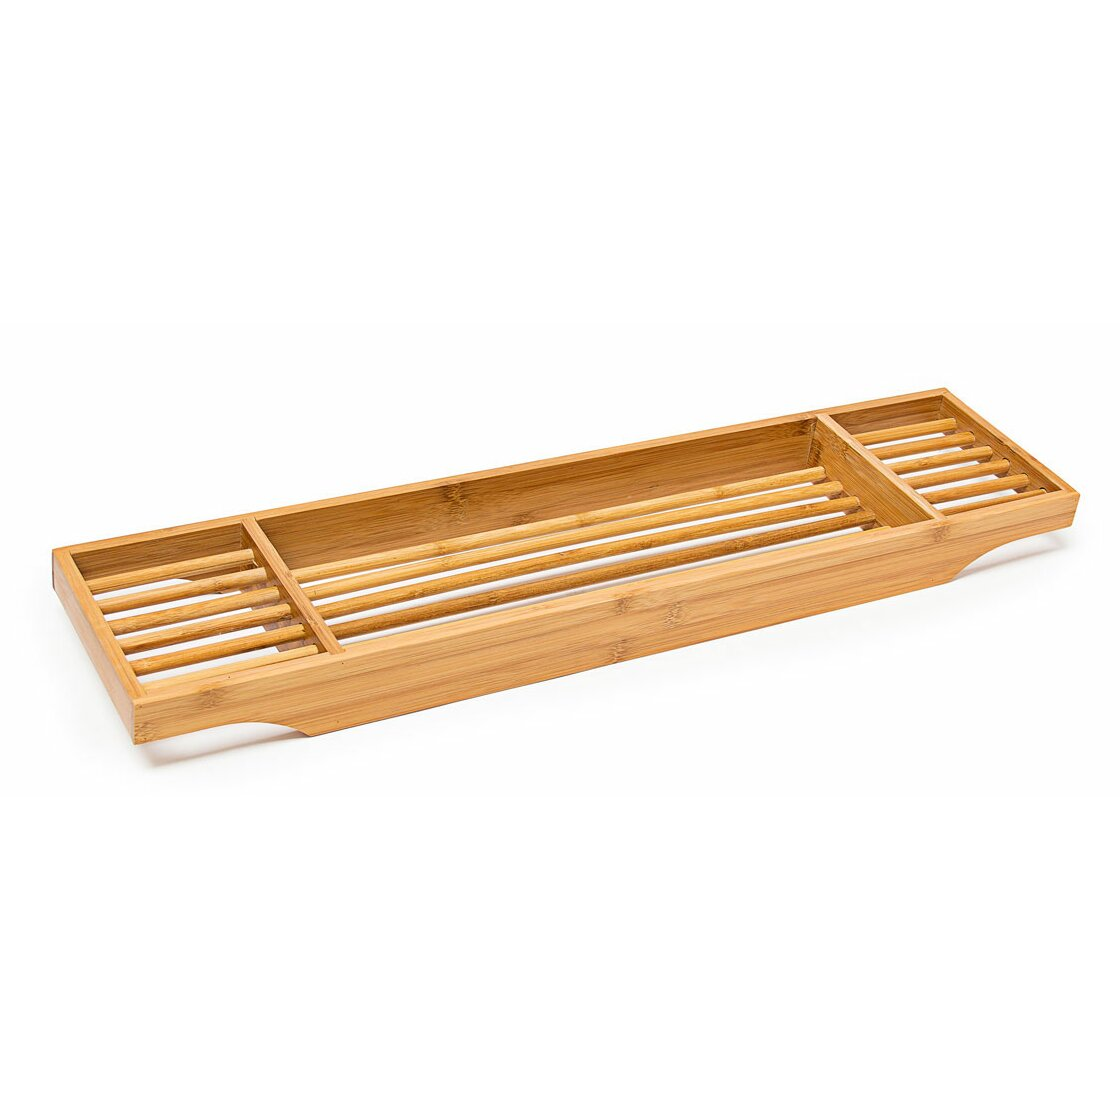 Belfry bamboo bath tray reviews wayfair uk for Bathroom tray